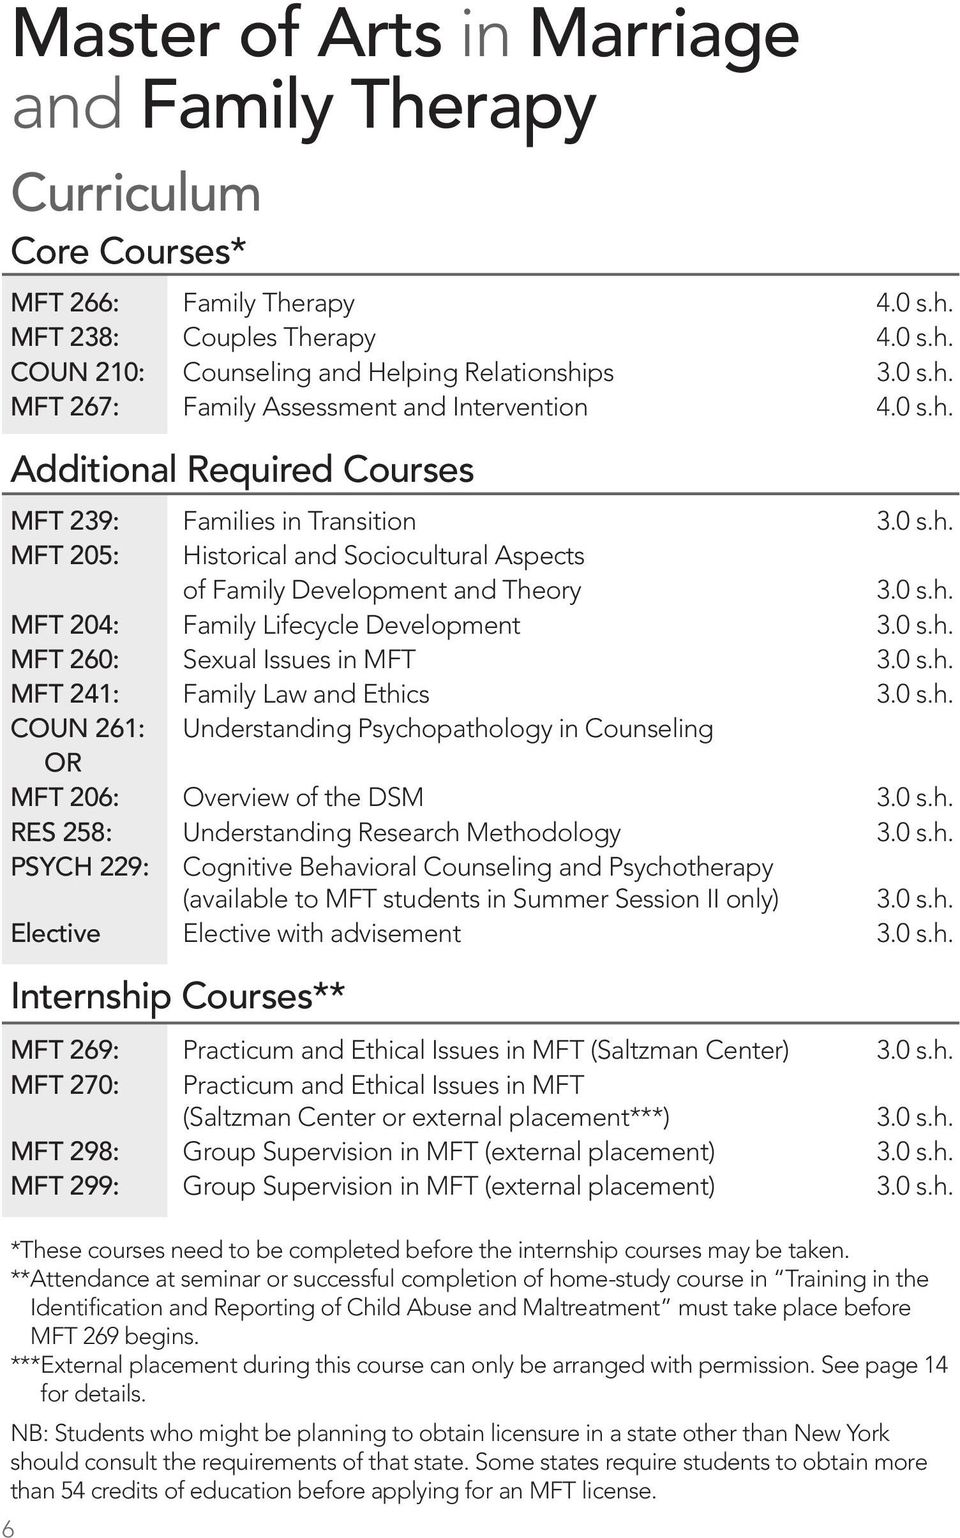 0 s.h. MFT 260: Sexual Issues in MFT 3.0 s.h. MFT 241: Family Law and Ethics 3.0 s.h. COUN 261: Understanding Psychopathology in Counseling OR MFT 206: Overview of the DSM 3.0 s.h. RES 258: Understanding Research Methodology 3.